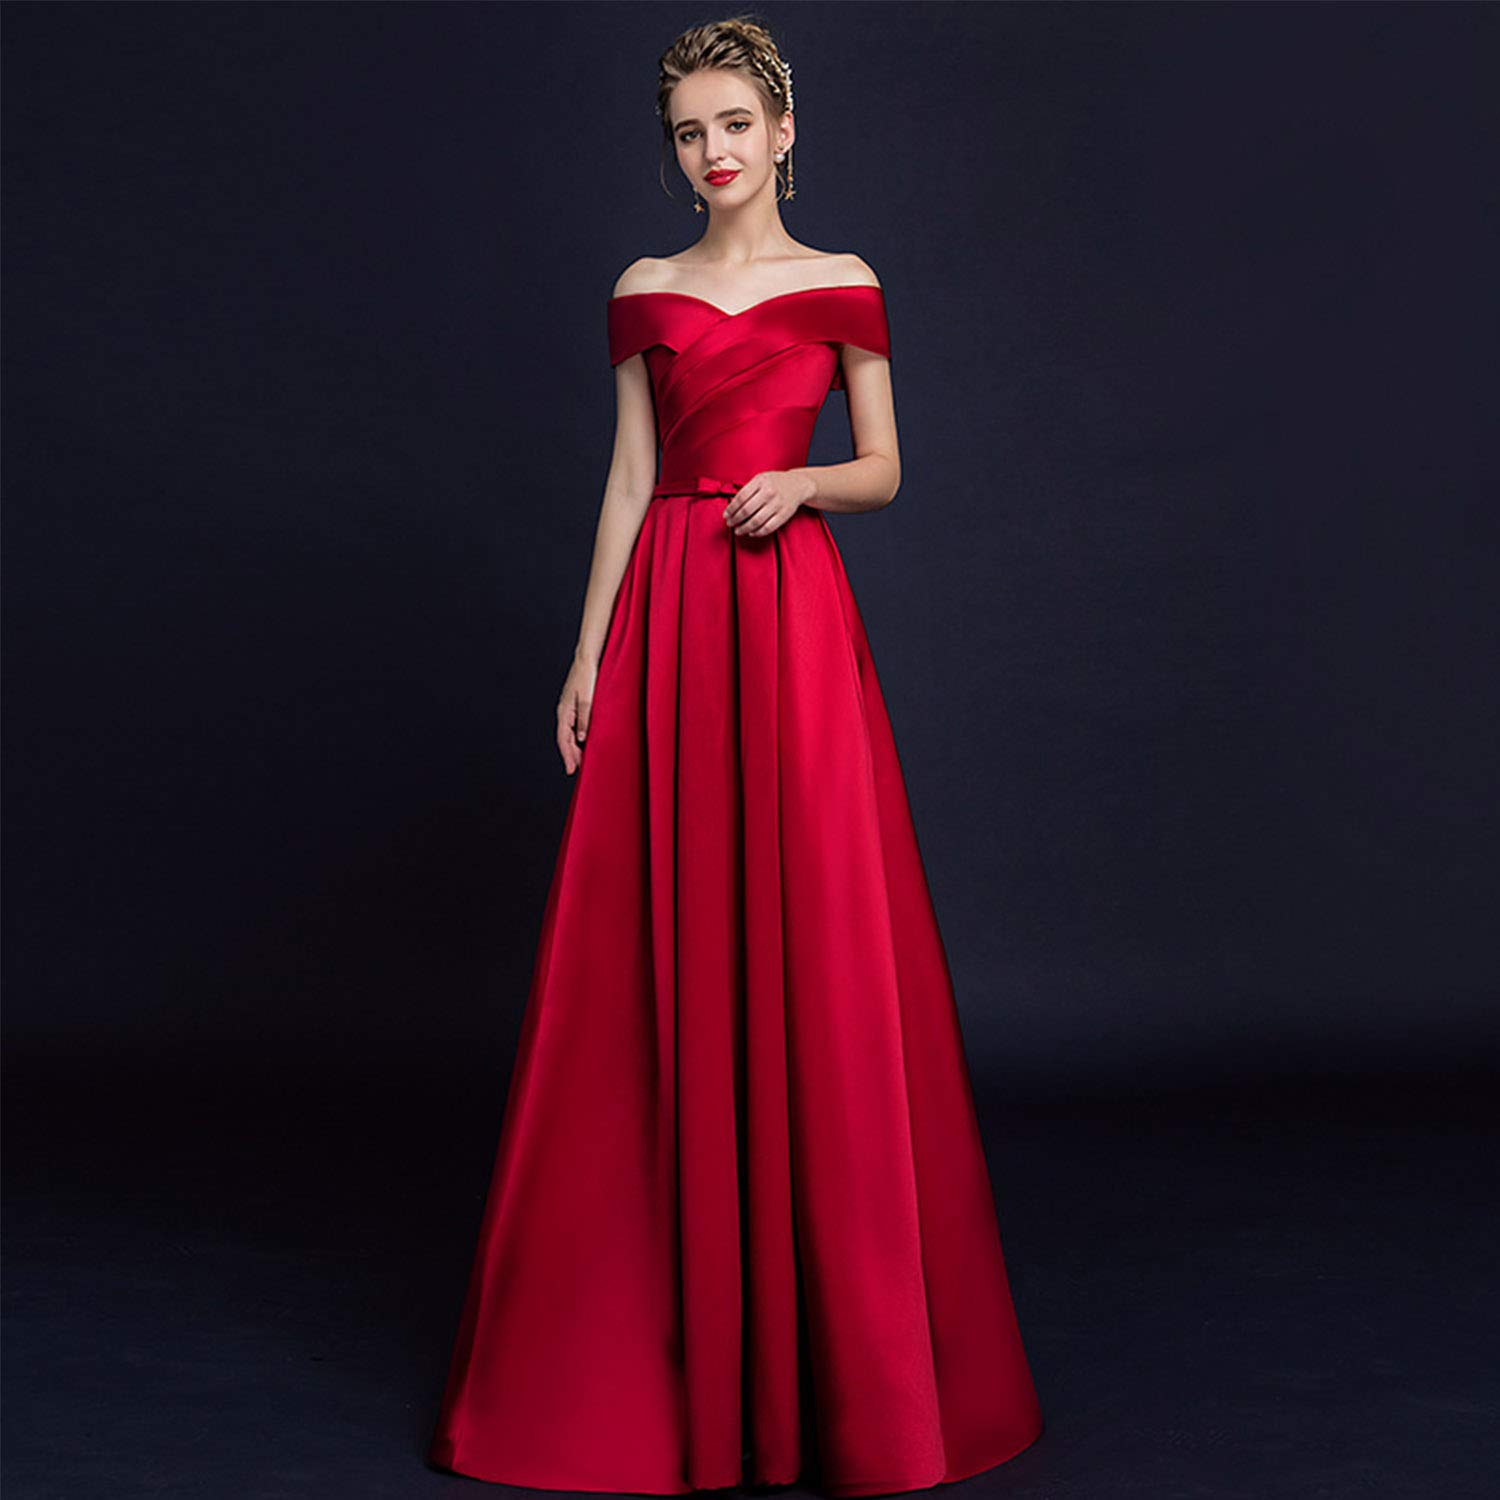 Amazon Cjjc Simple Elegant Red Wedding Dresses For Bride Sexy Slim Floor Length Ruched Backless Women Ceremony Party Banquet Use: Elegant Ed Wedding Dresses At Reisefeber.org